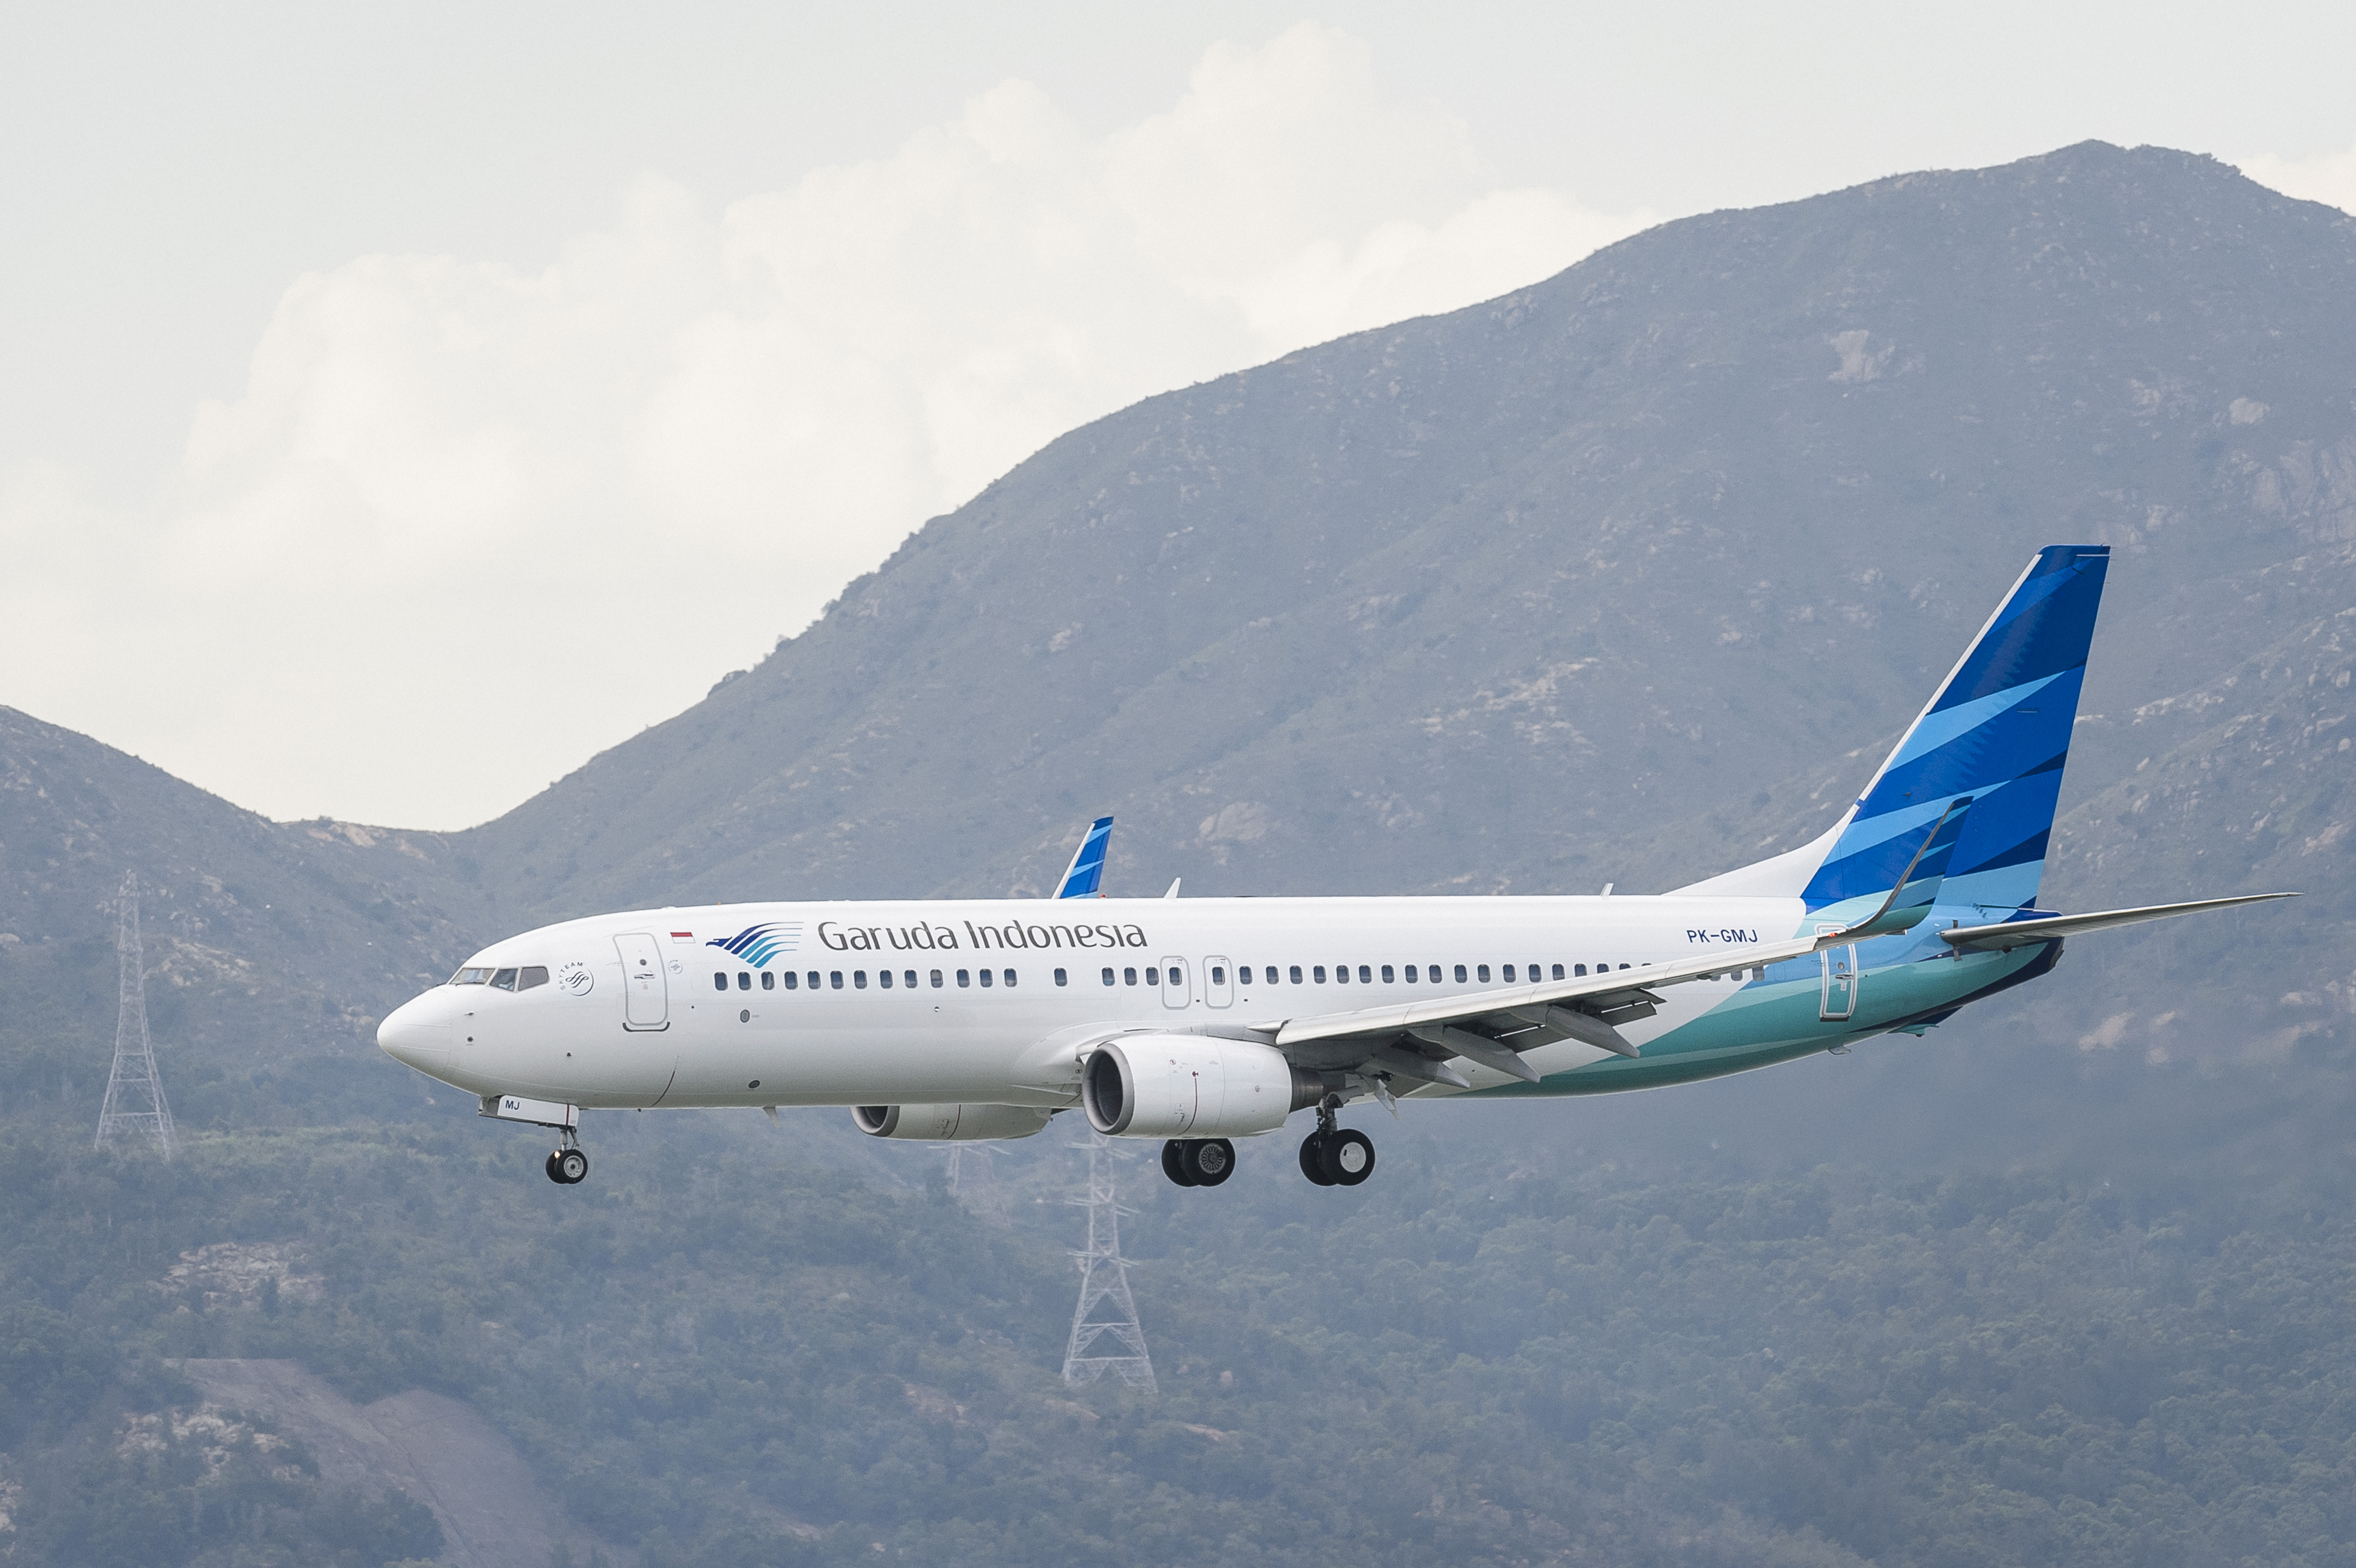 A Boeing 737-8U3 passenger plane belonging to the Garuda Indonesia lands at Hong Kong International Airport. Garuda plans to cancel its 737 MAX contract.